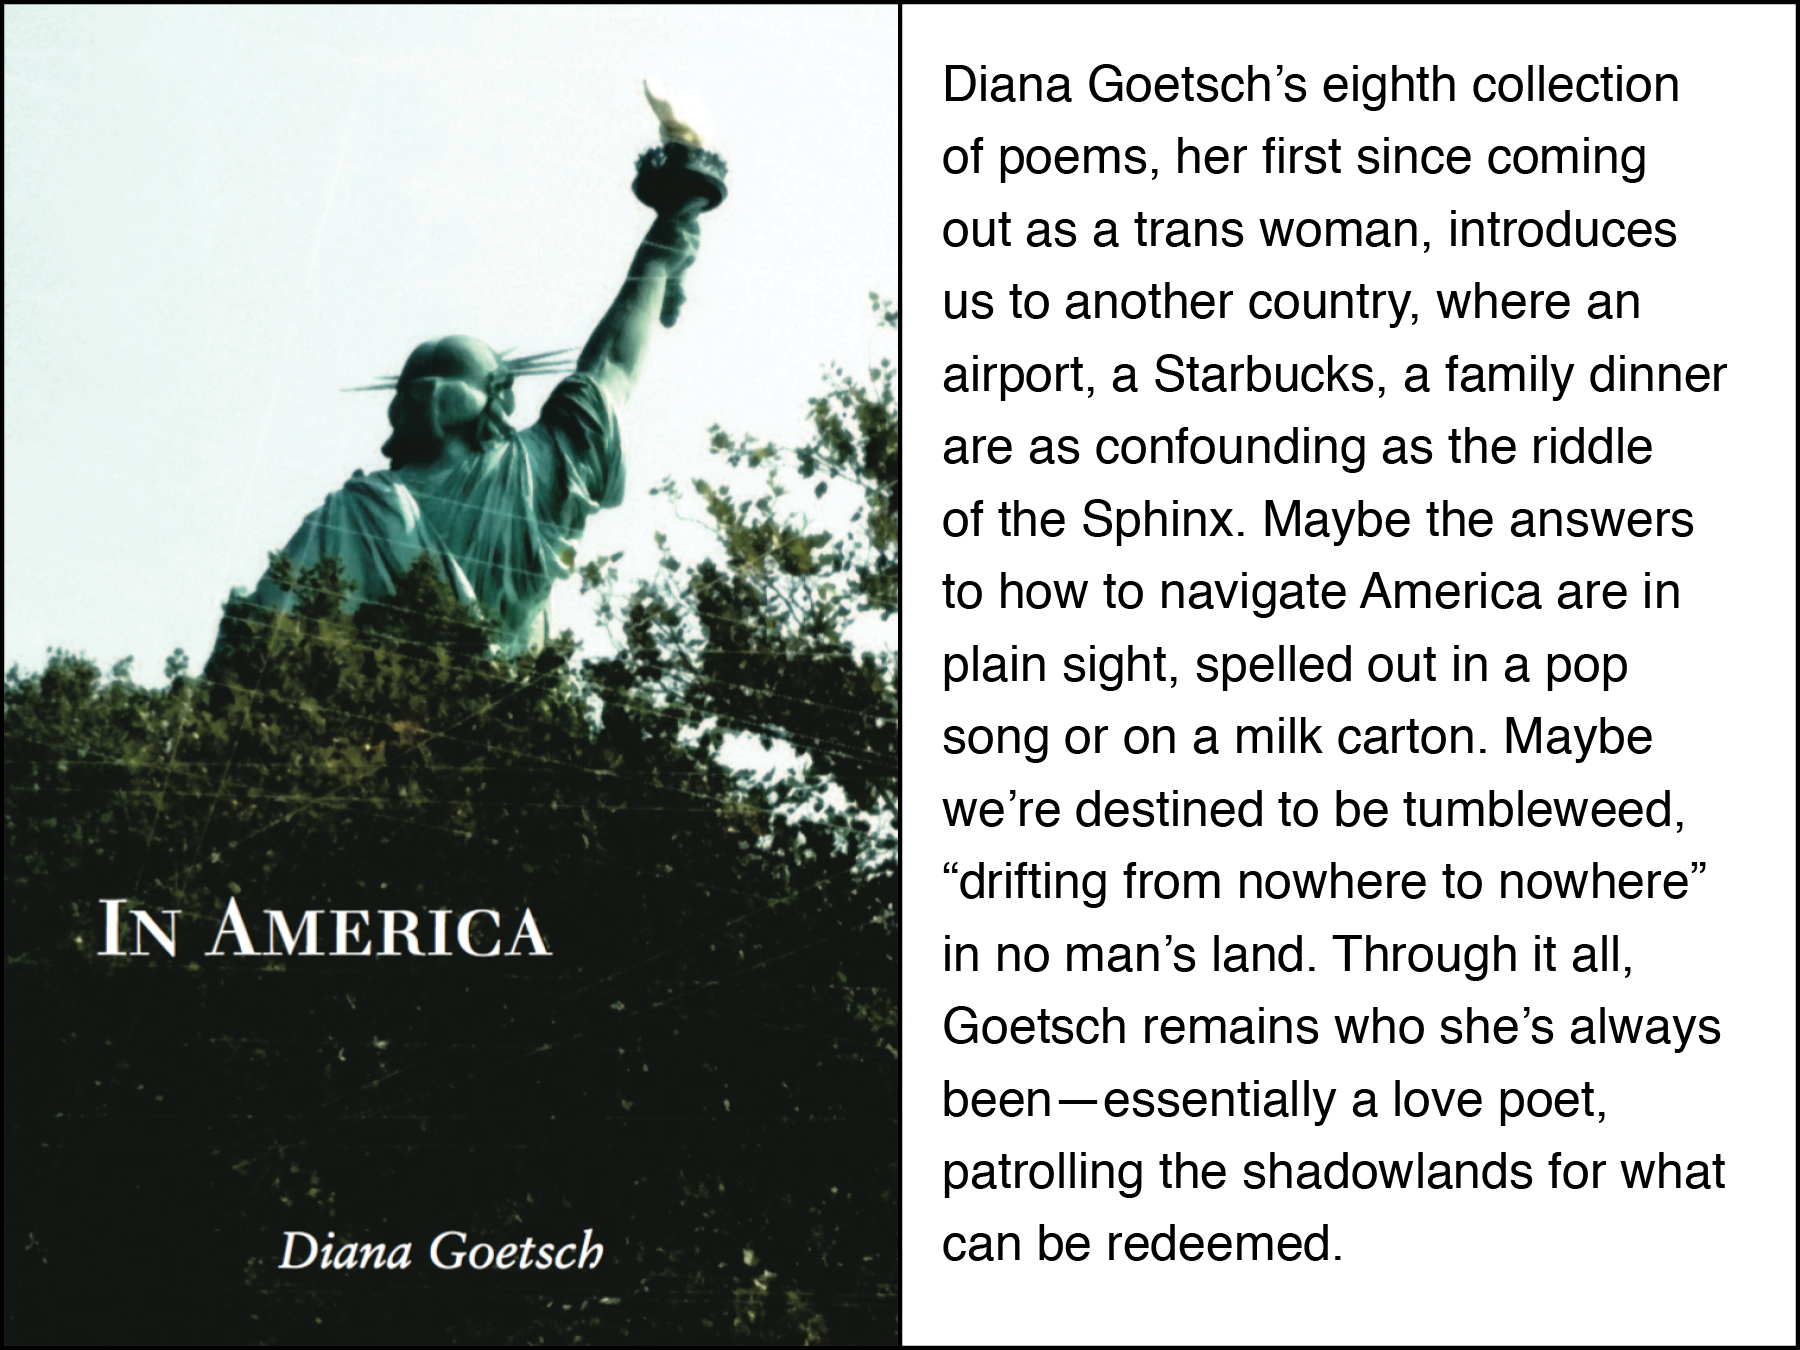 Diana Goetsch's newest poetry collection now out